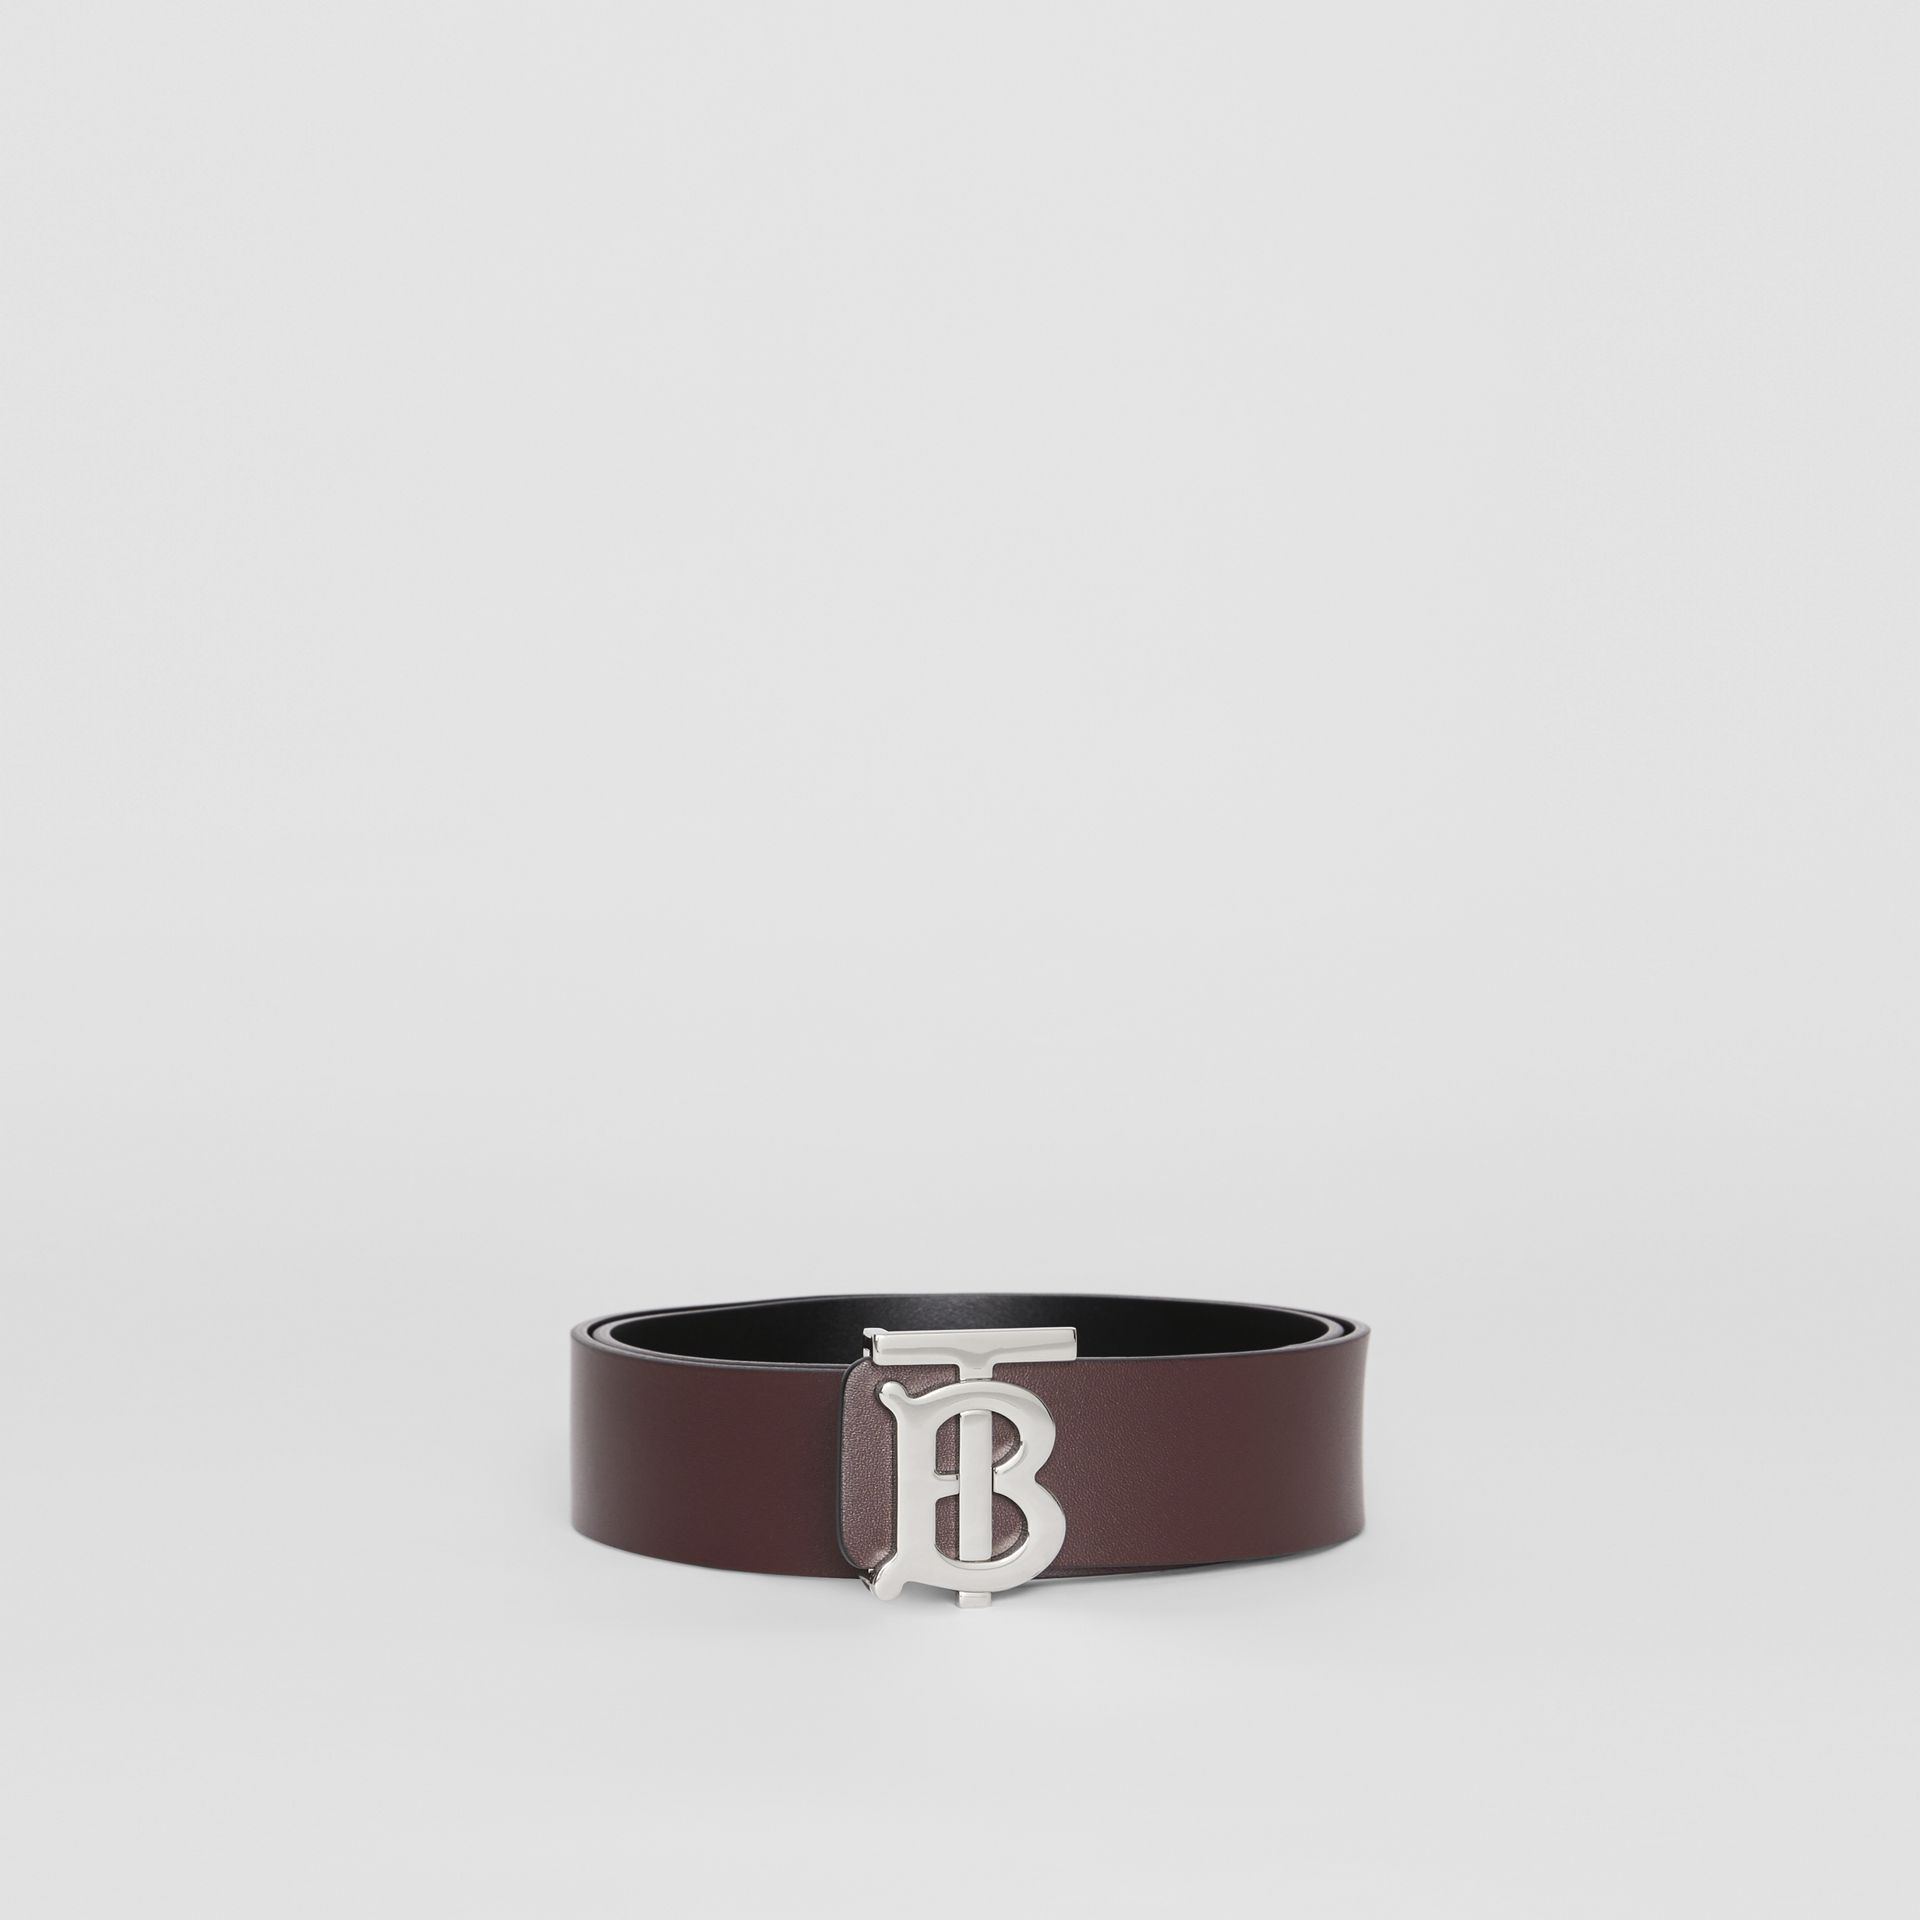 Ceinture en cuir réversible Monogram (Oxblood) - Homme | Burberry Canada - photo de la galerie 2